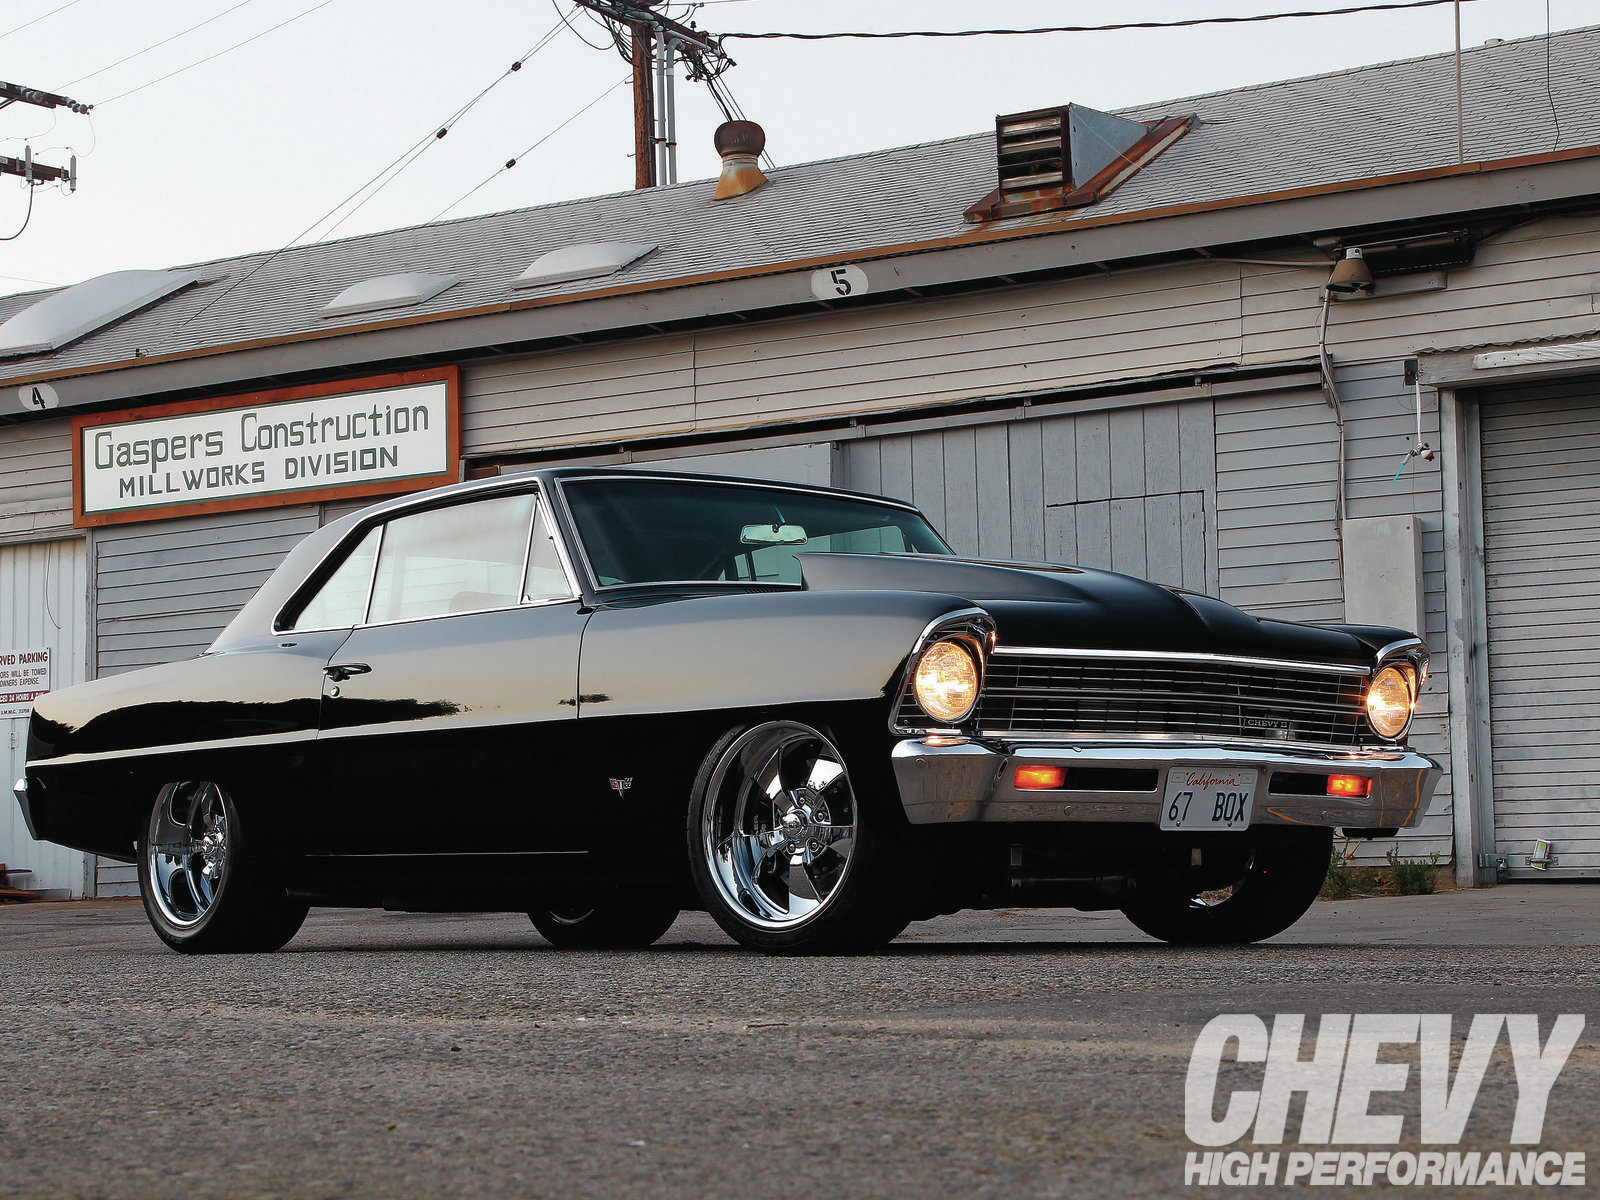 1967 chevy nova hot rod pictures gallery hot rod cars used manual transmission pickup trucks for sale Manual Transmission Car